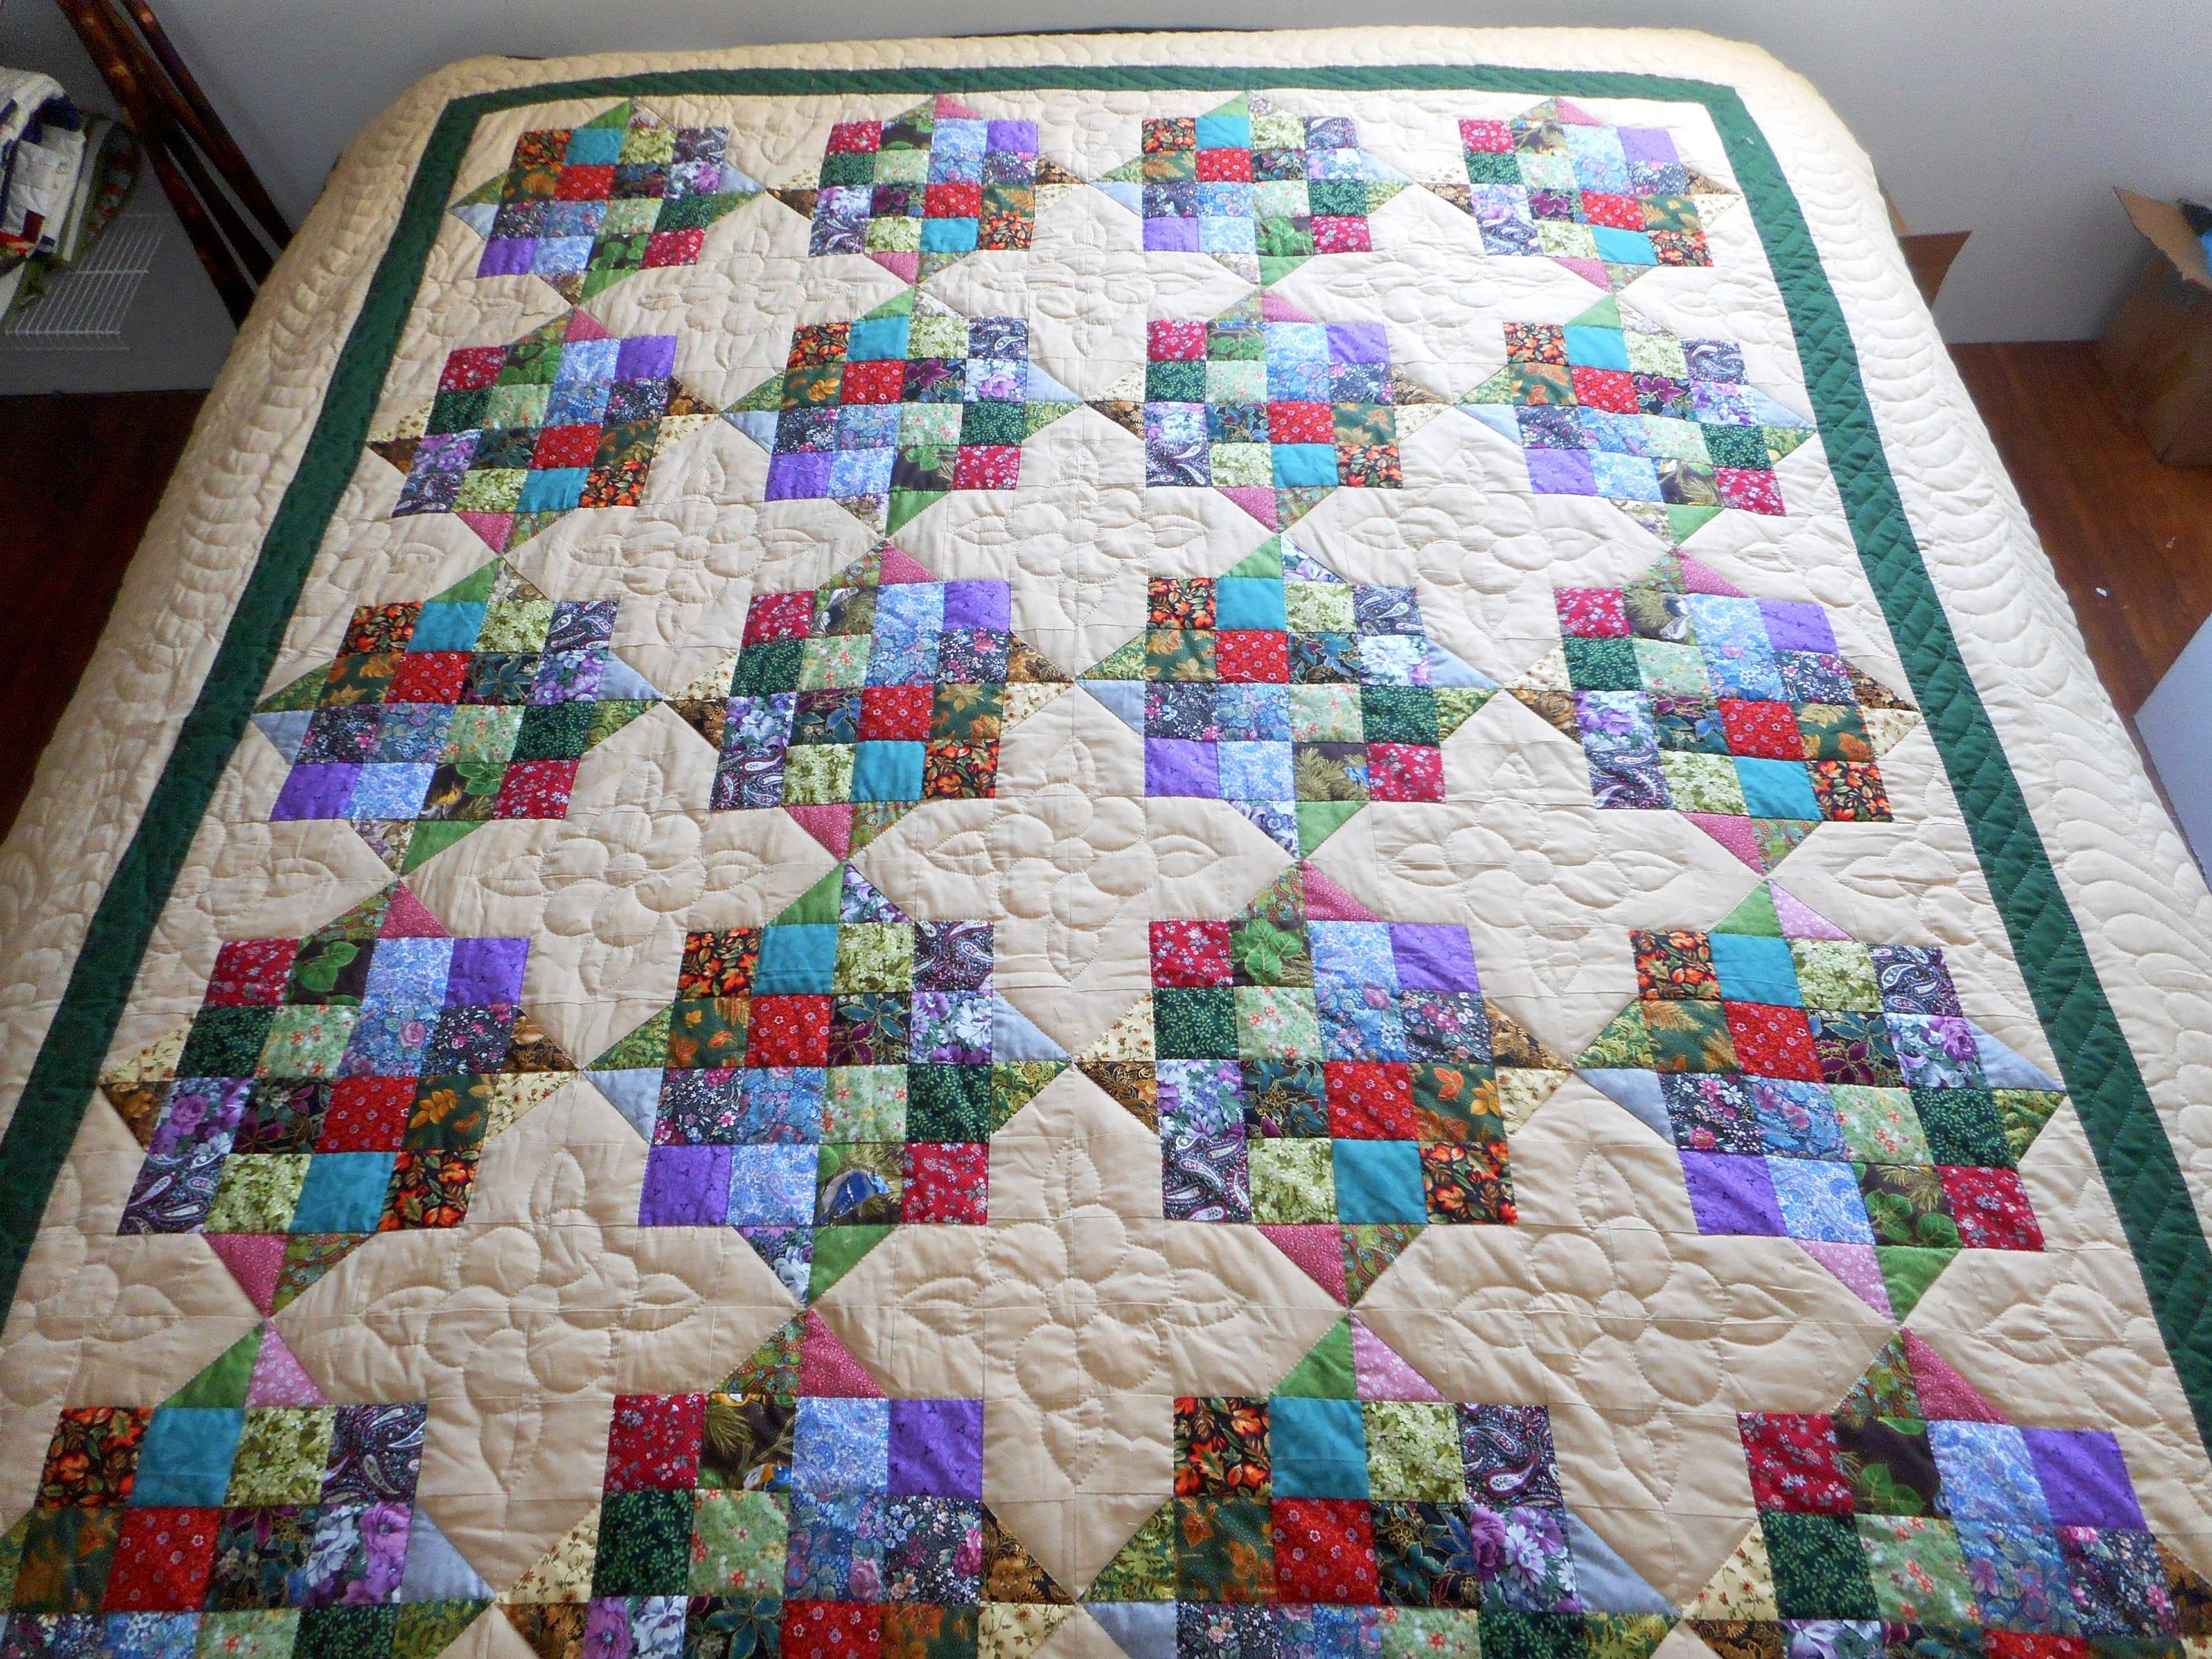 Amish Patchwork Quilt 16 patch squares Handmade quilts